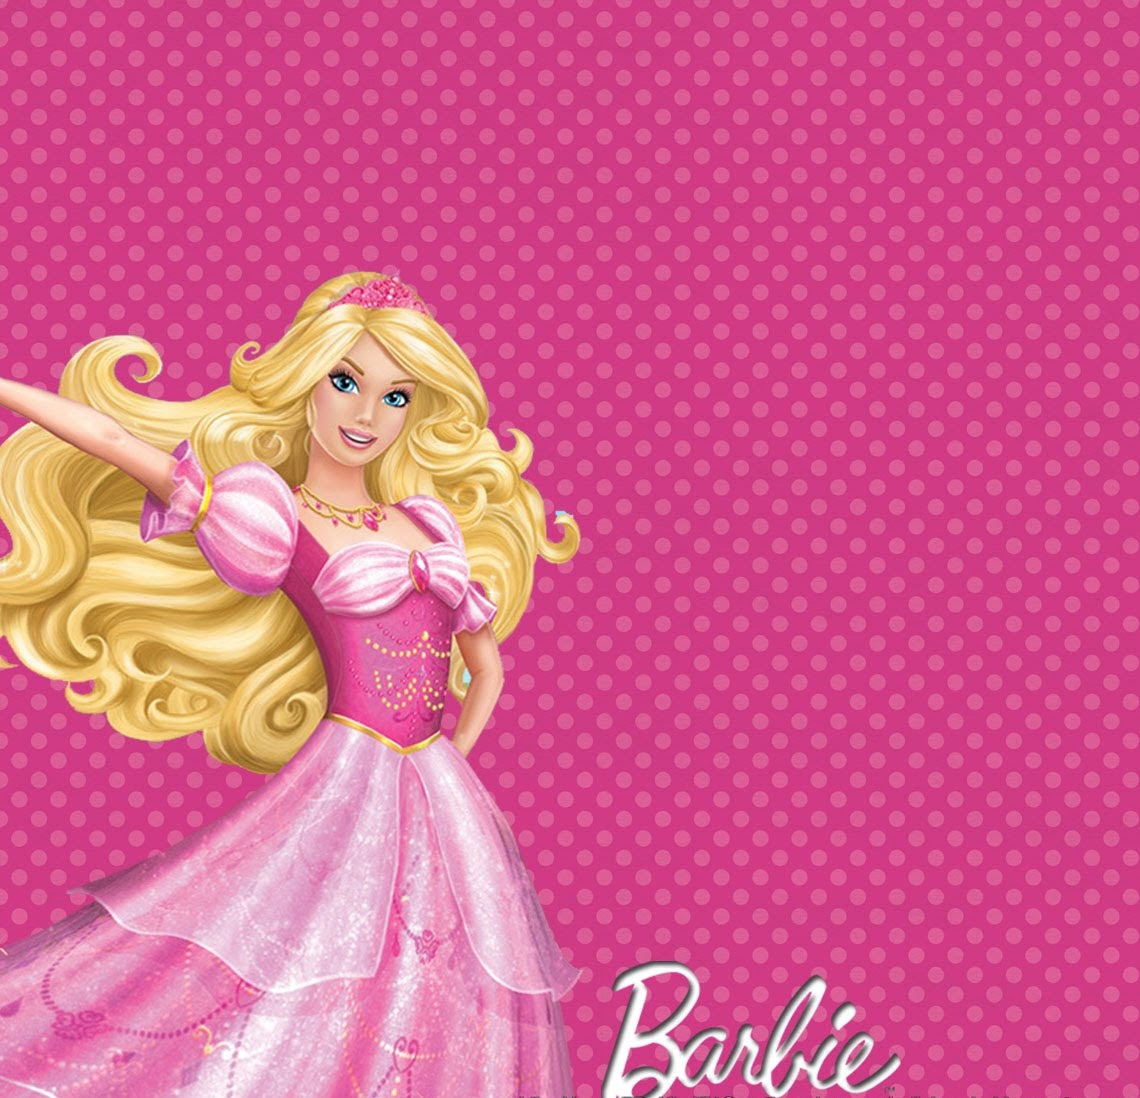 Barbie Bilder Barbie Hintergrund Hd Hintergrund And Background Fotos